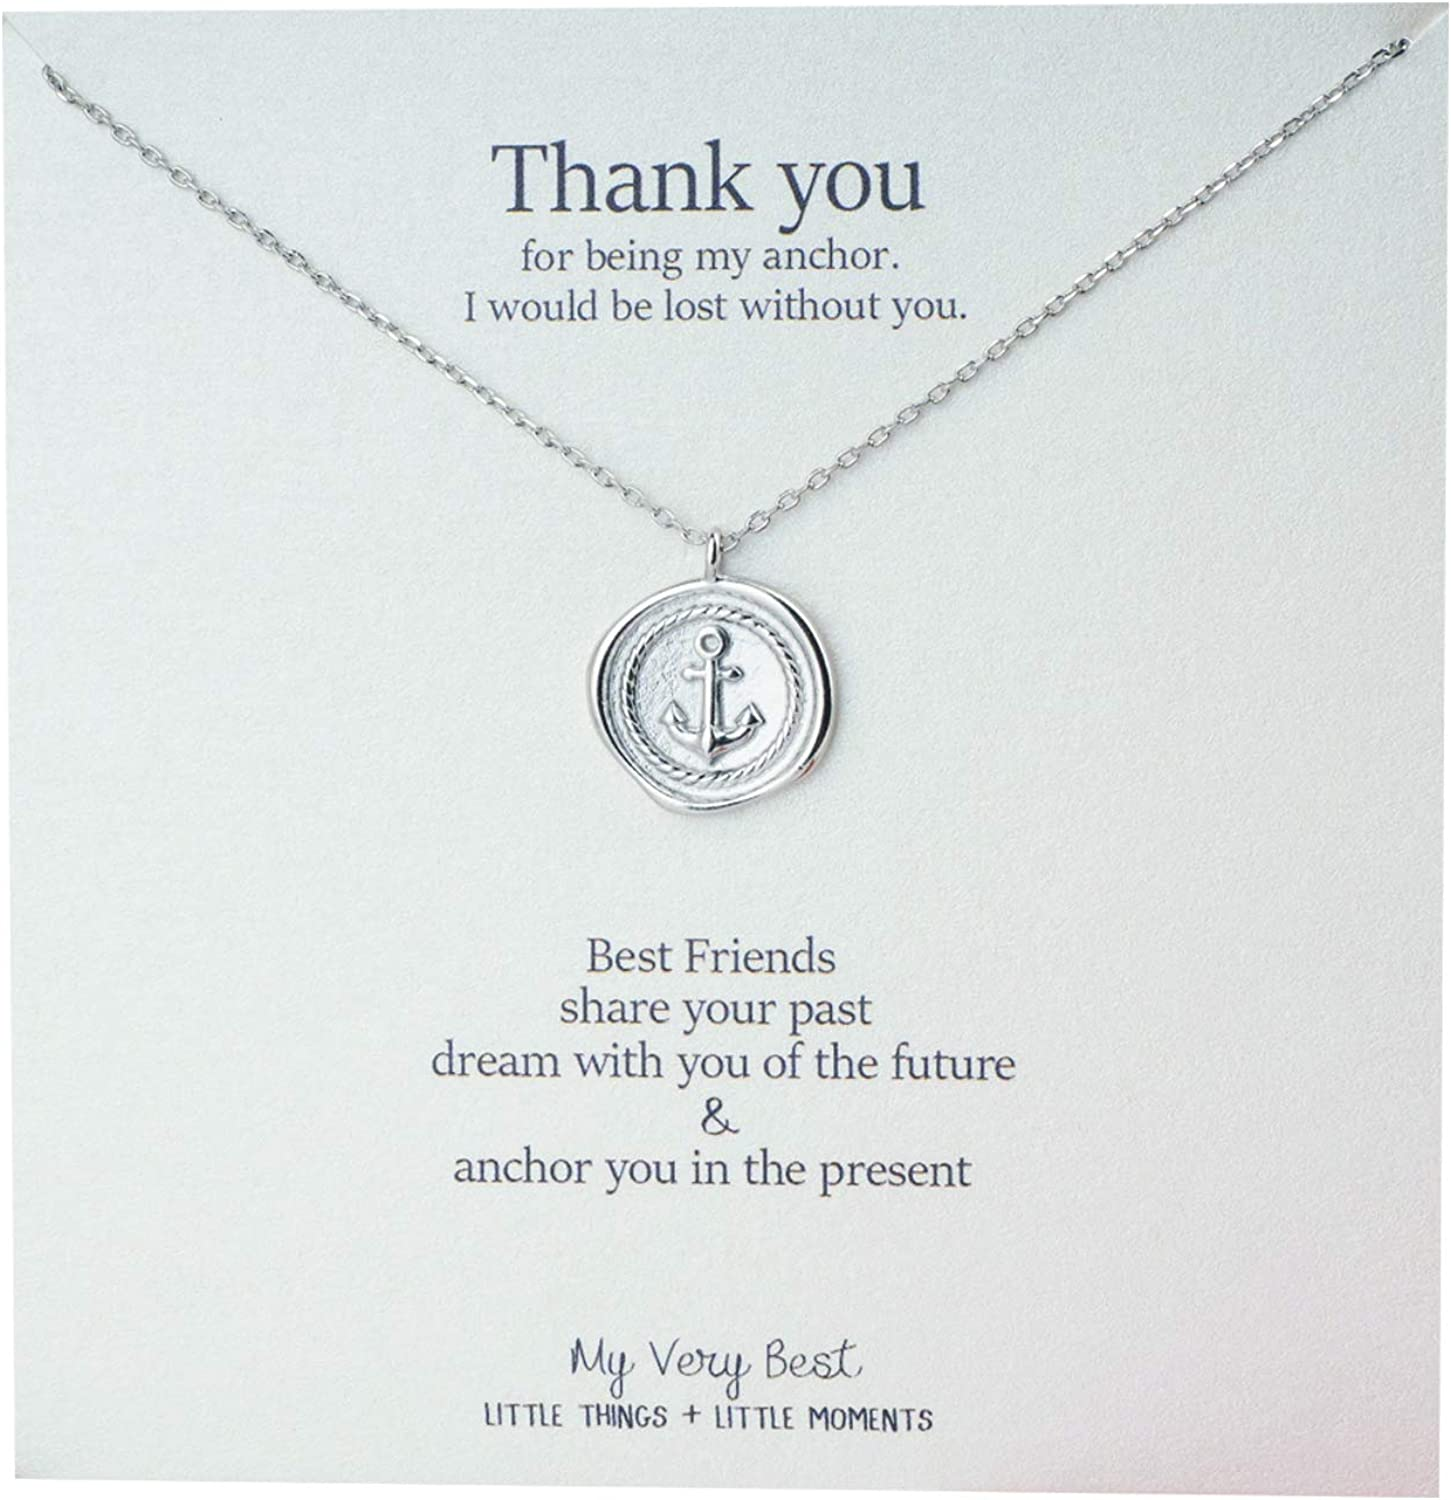 My Very Best Friendship Anchor Necklace Sweet Present Idea Best Friend Necklace for Women Express Love and Thank You to Soulmate and Family